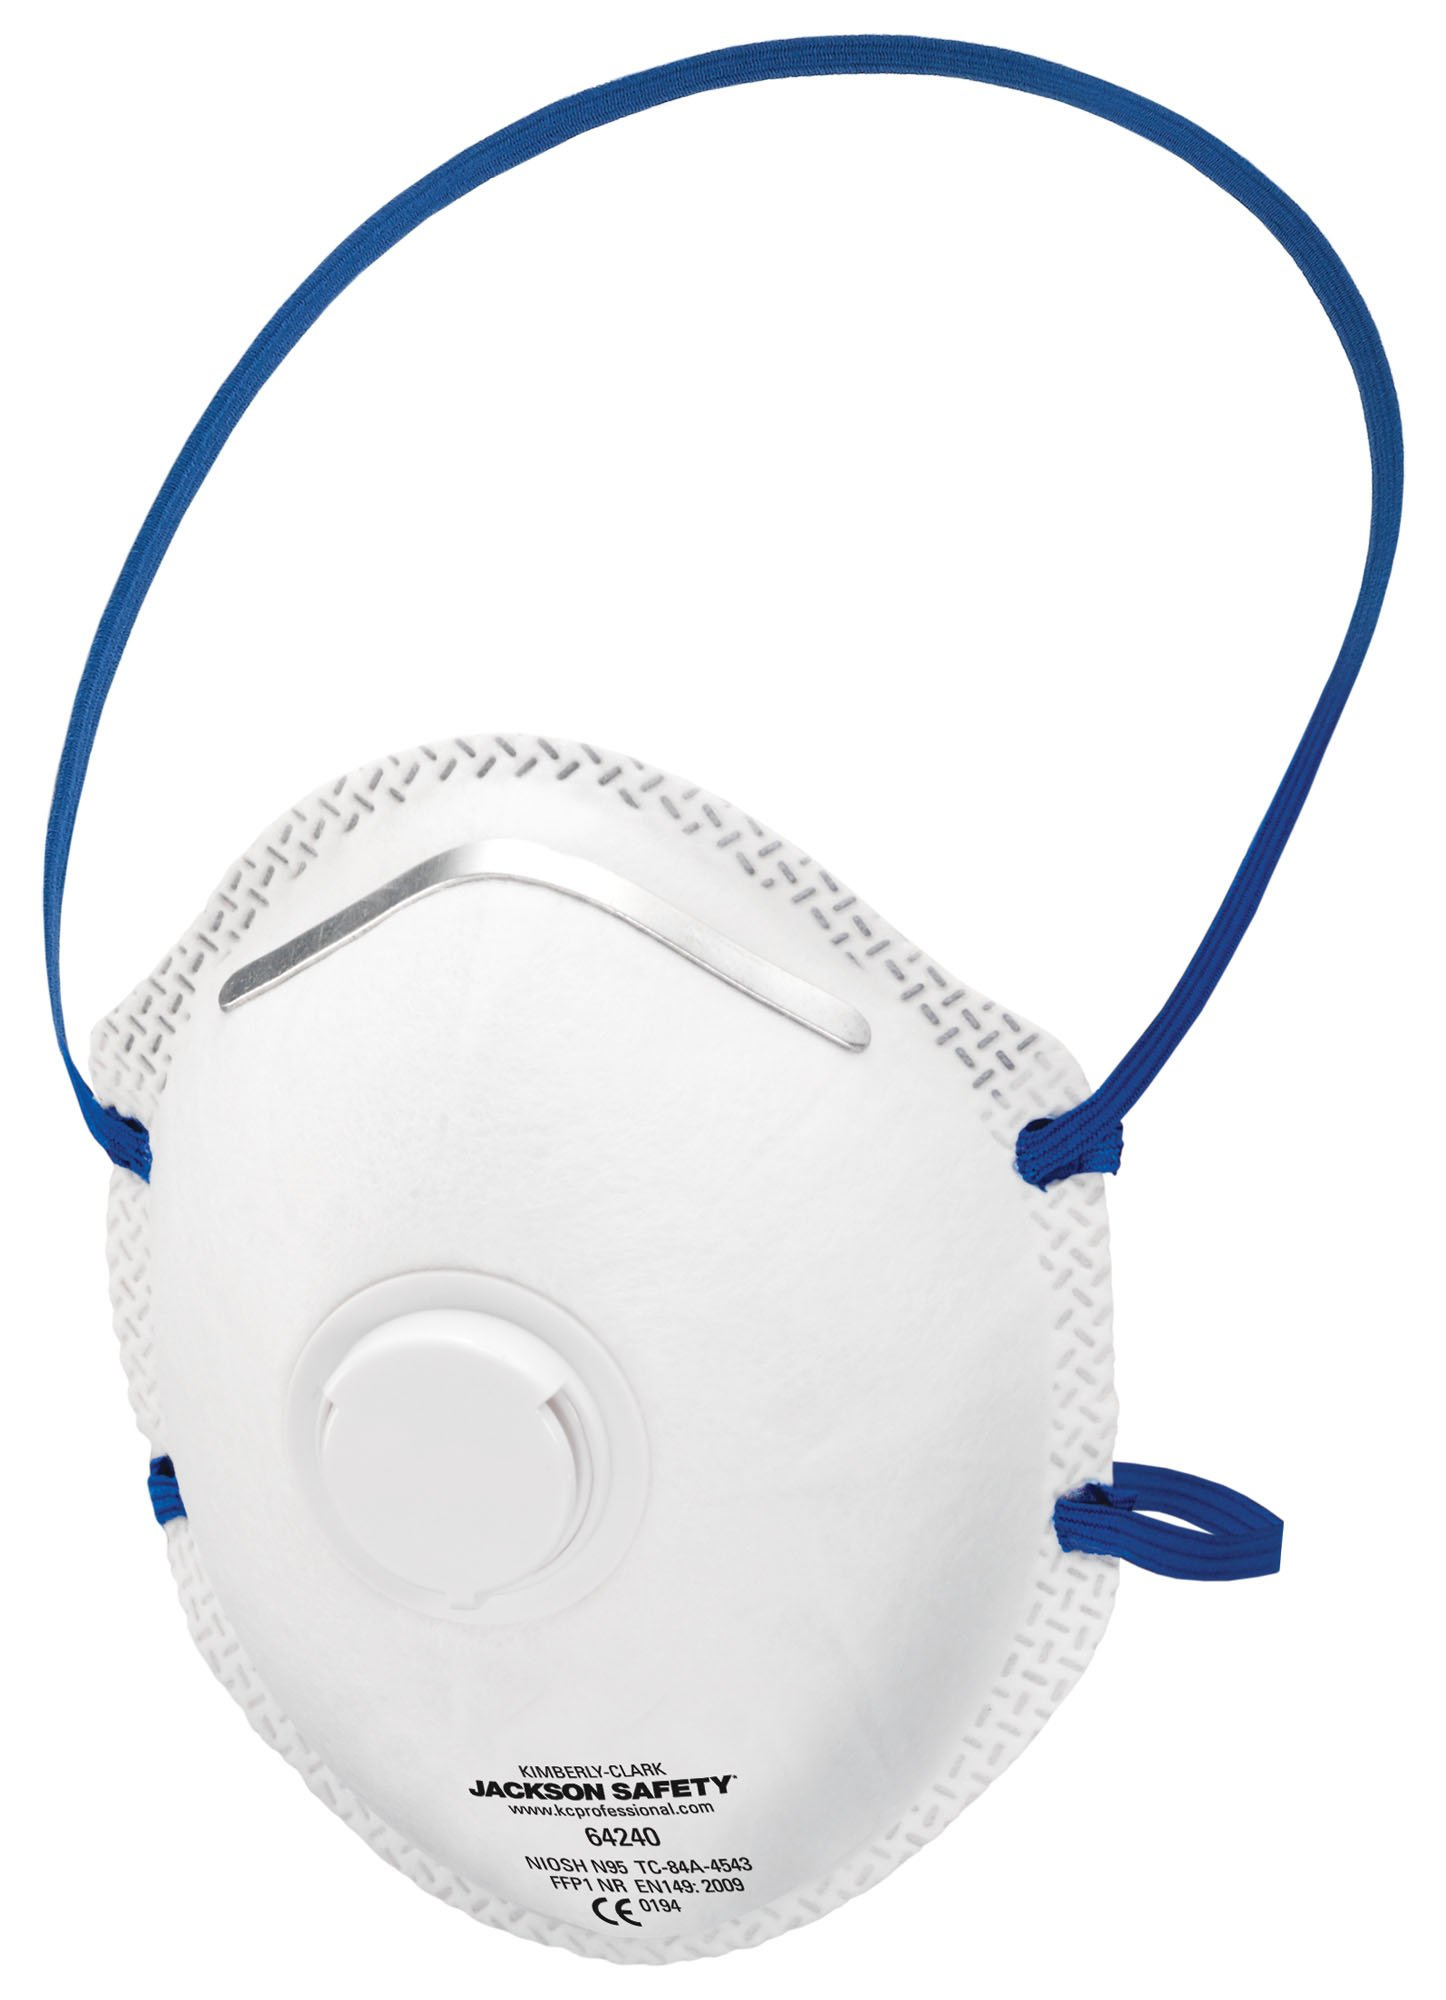 Jackson Safety R10 N95 Particulate Respirator with Single Valve, Blue (Case of 80) by Jackson Safety (Image #1)